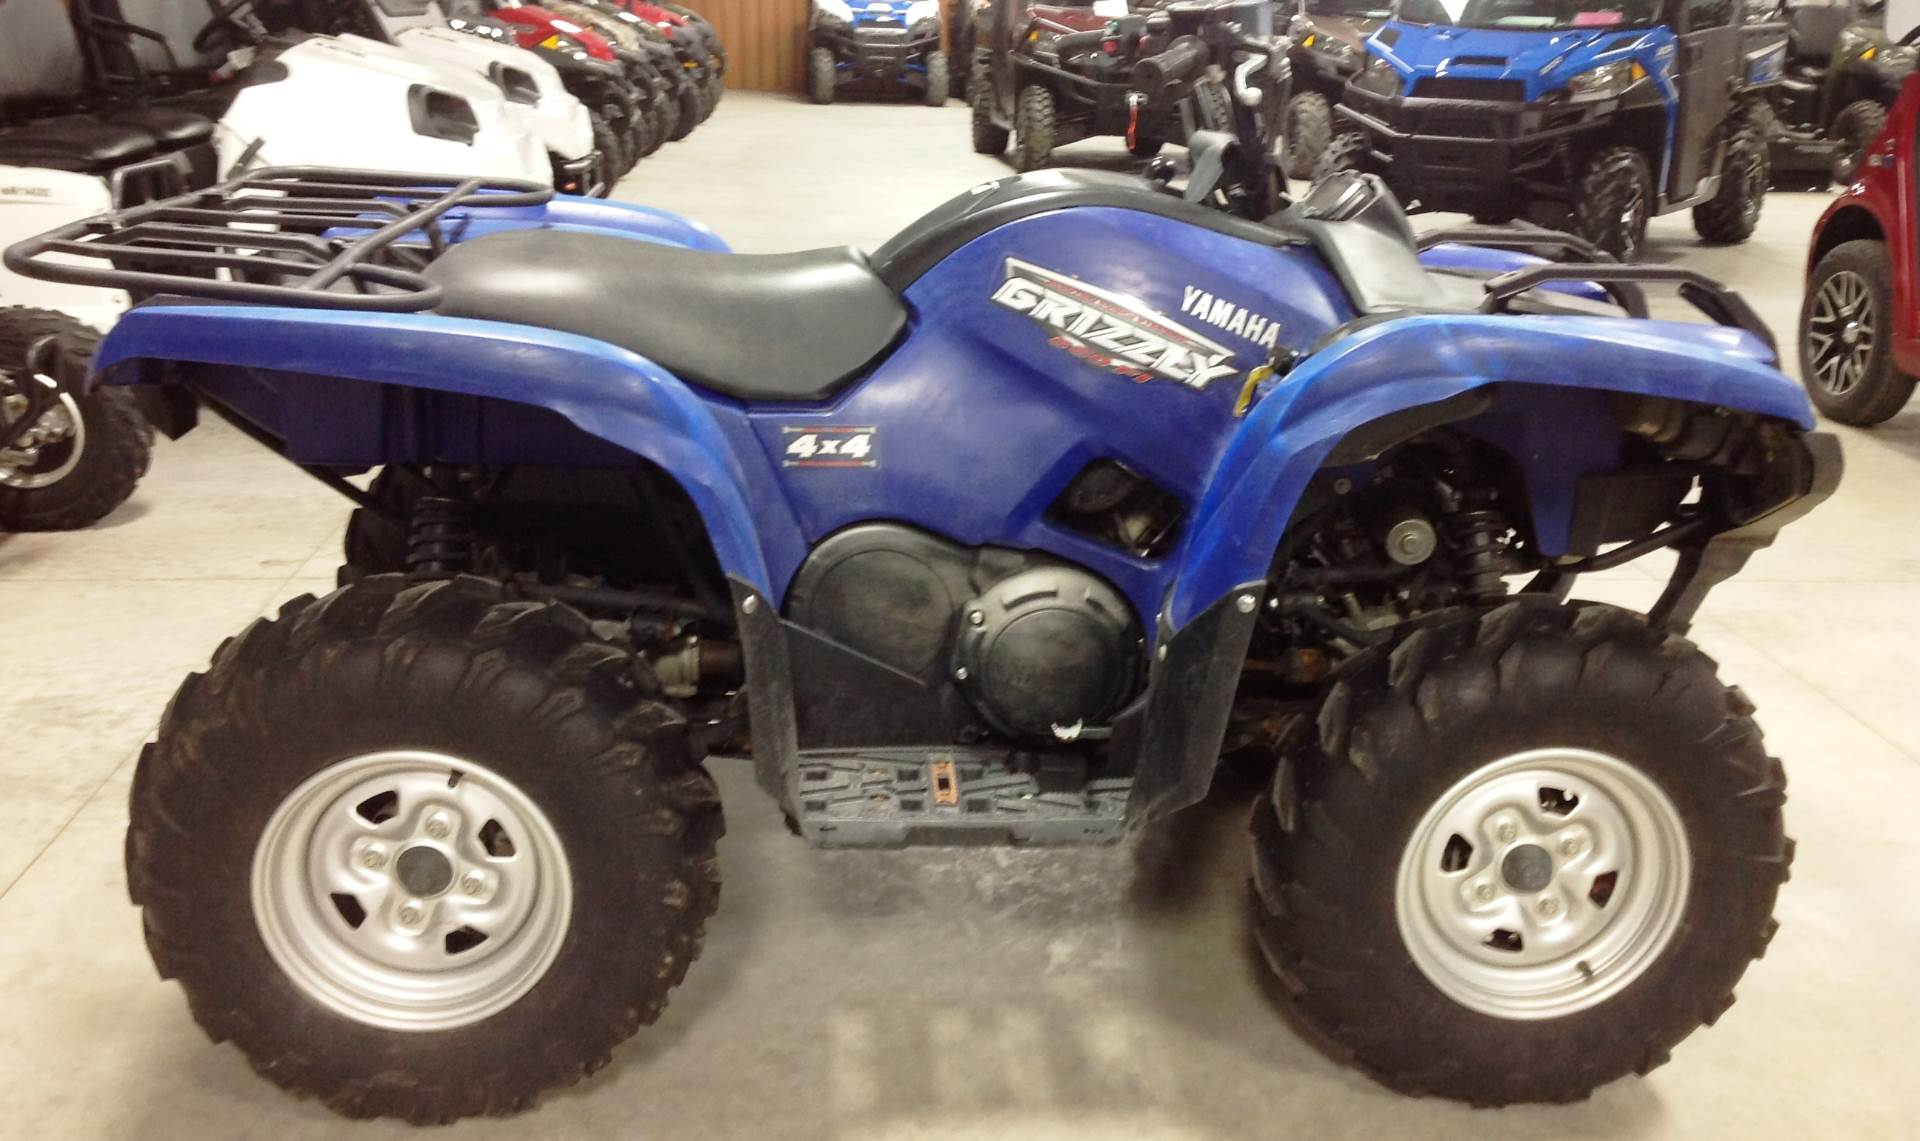 Used 2009 Yamaha Grizzly 550 FI Auto. 4x4 EPS ATVs in Ottumwa, IA ...